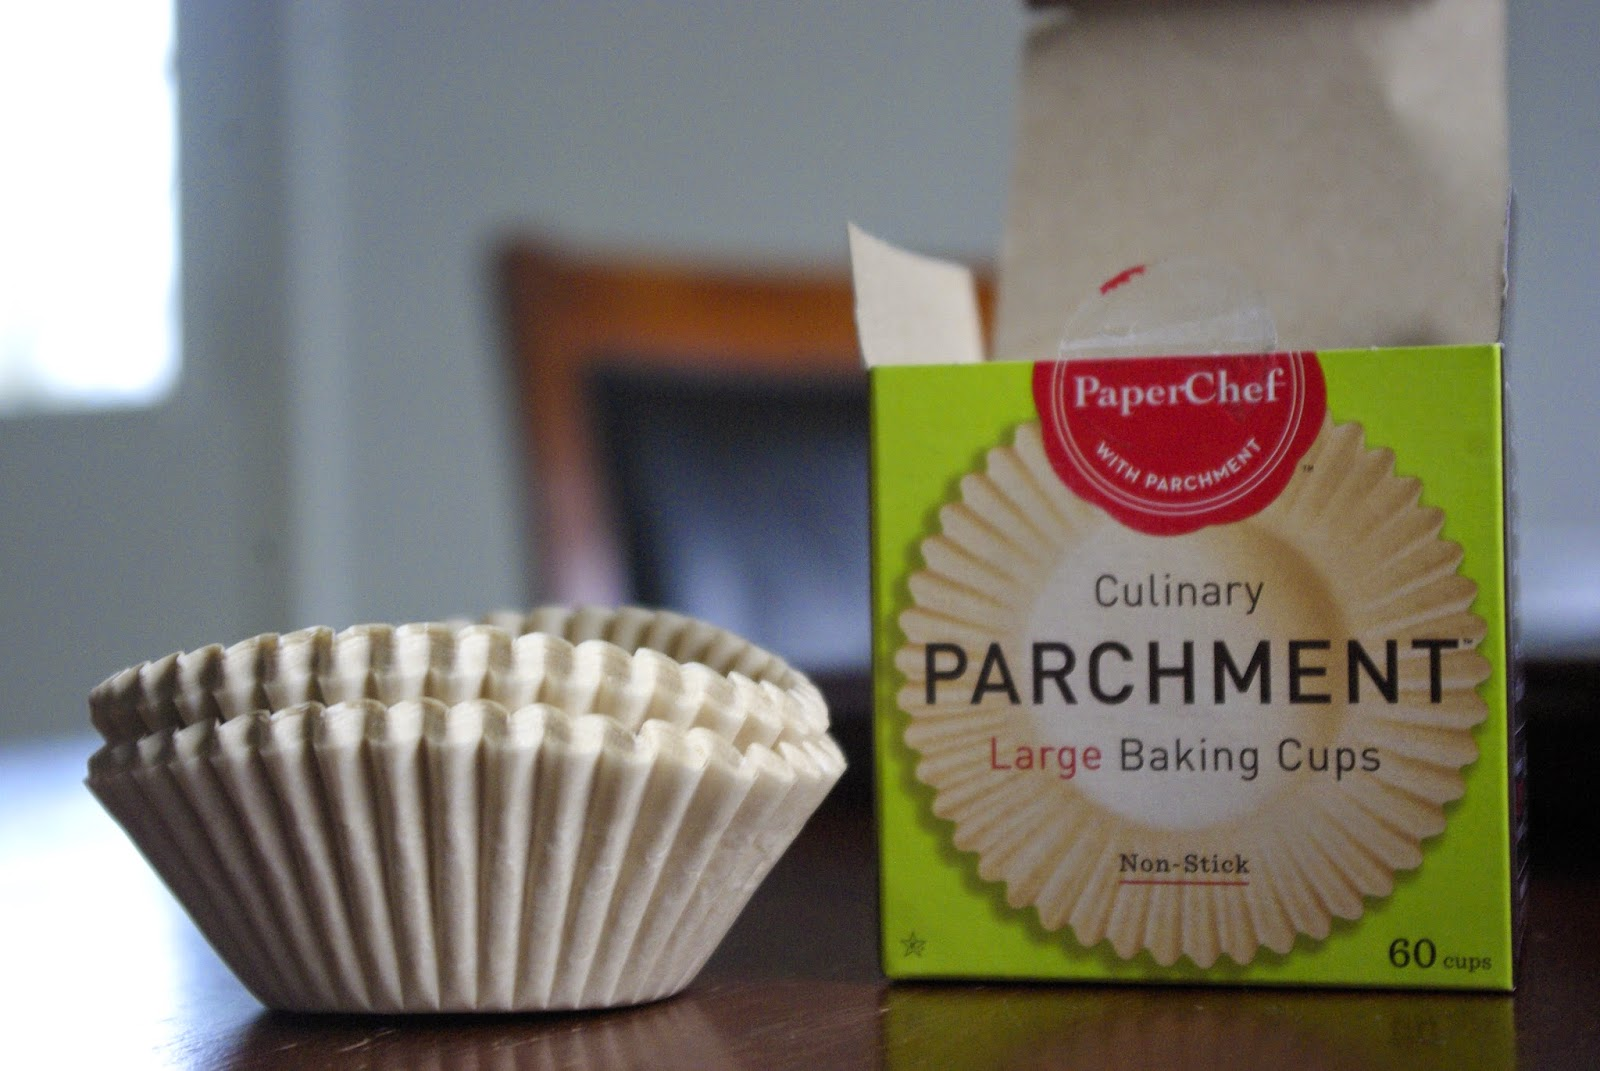 PaperChef Large Baking Cups